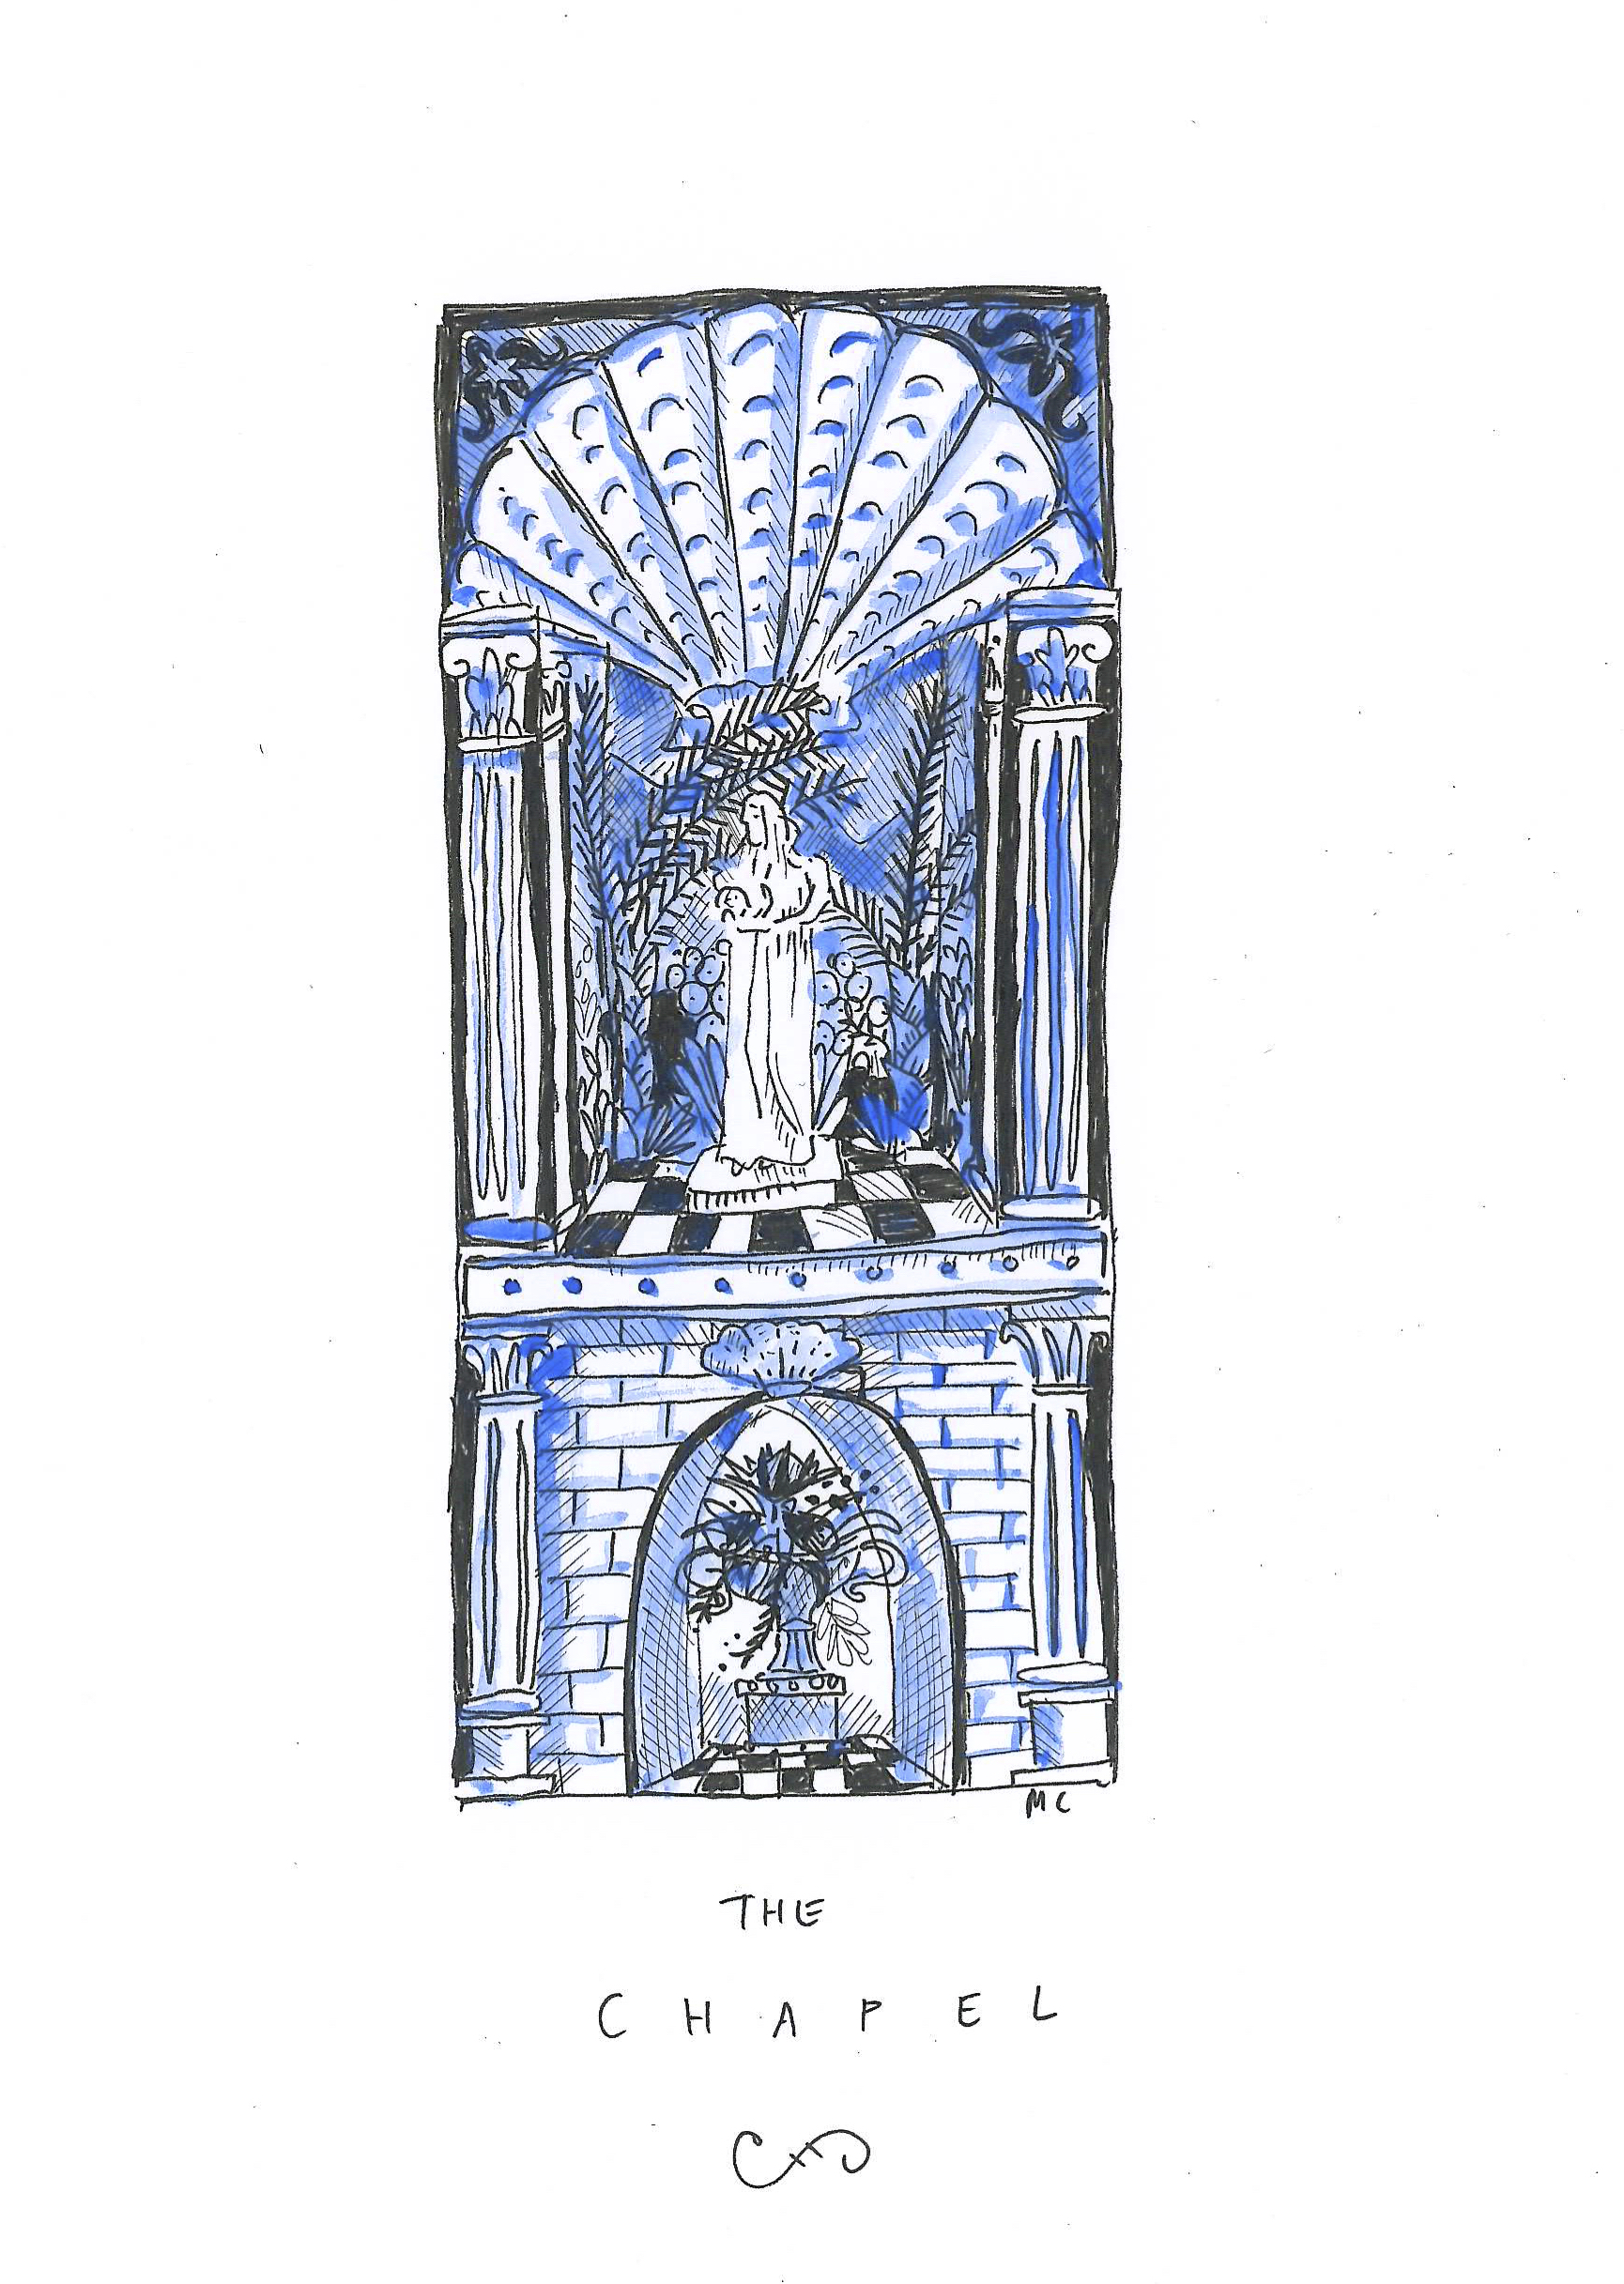 An initial sketch of the Chapel